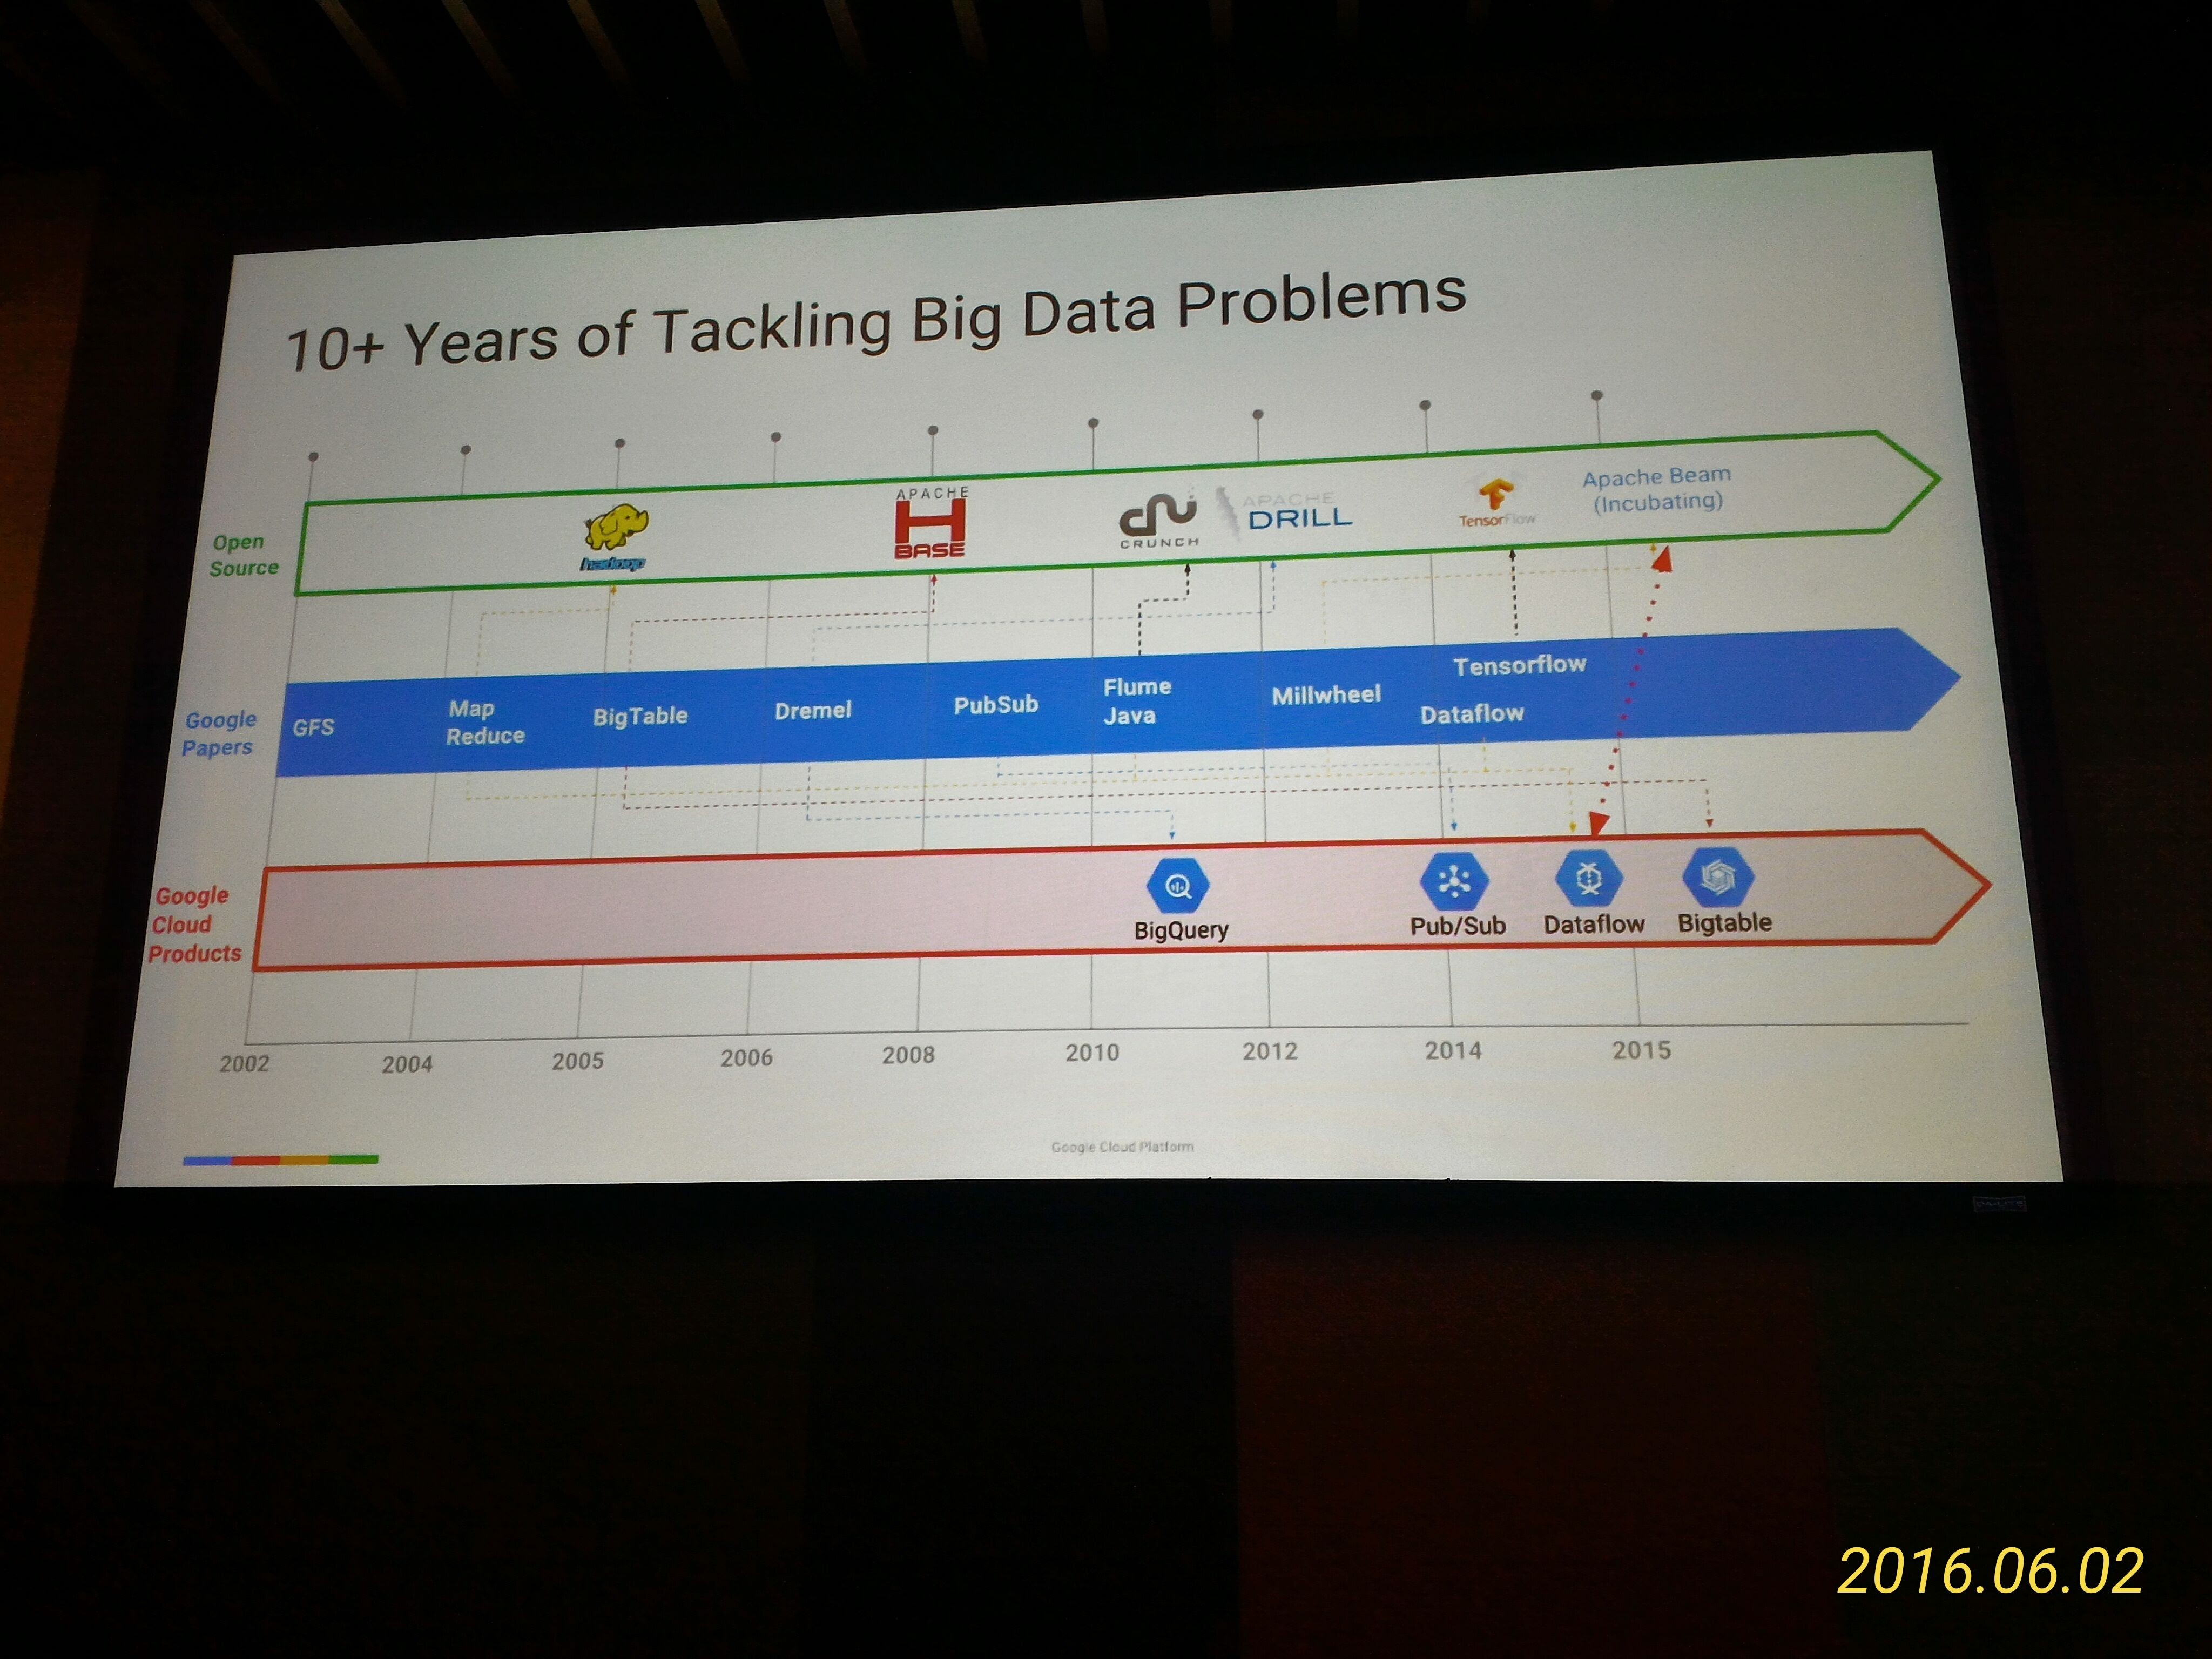 10+ Years of Tackling Big Data Problem